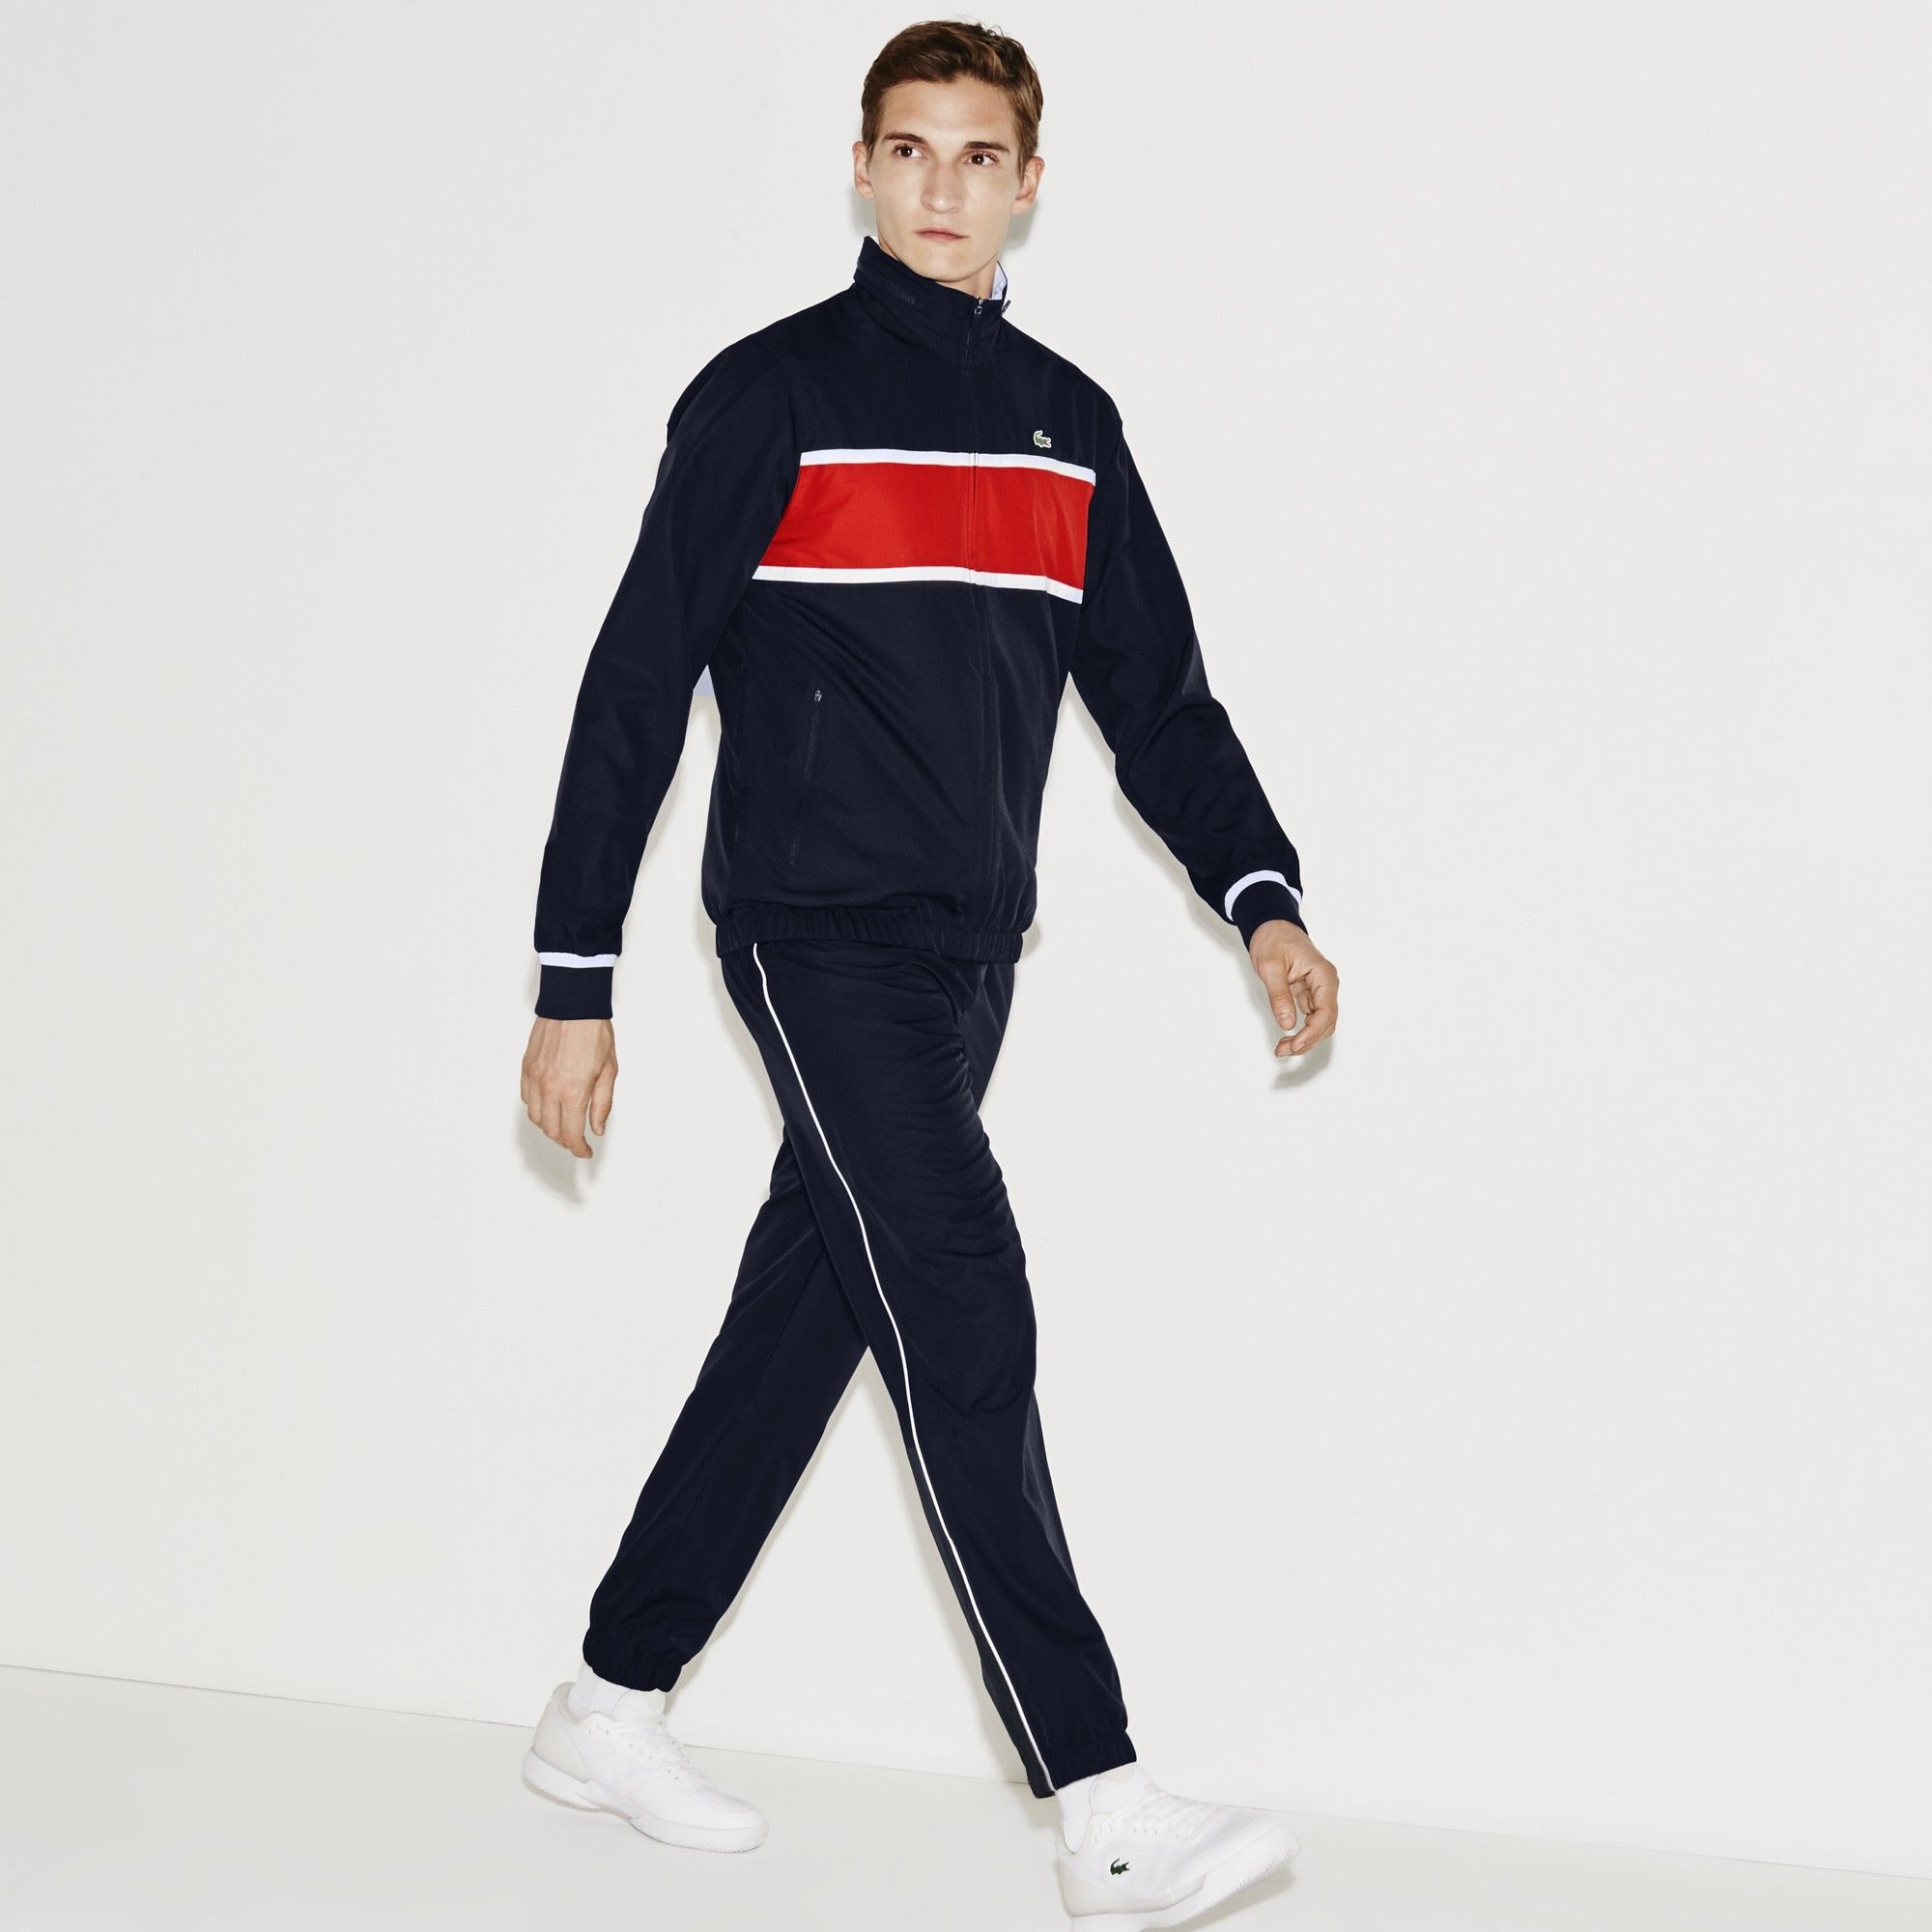 f9b4d330b LACOSTE Men s SPORT Colorblock Tennis Tracksuit - navy blue etna red.   lacoste  cloth